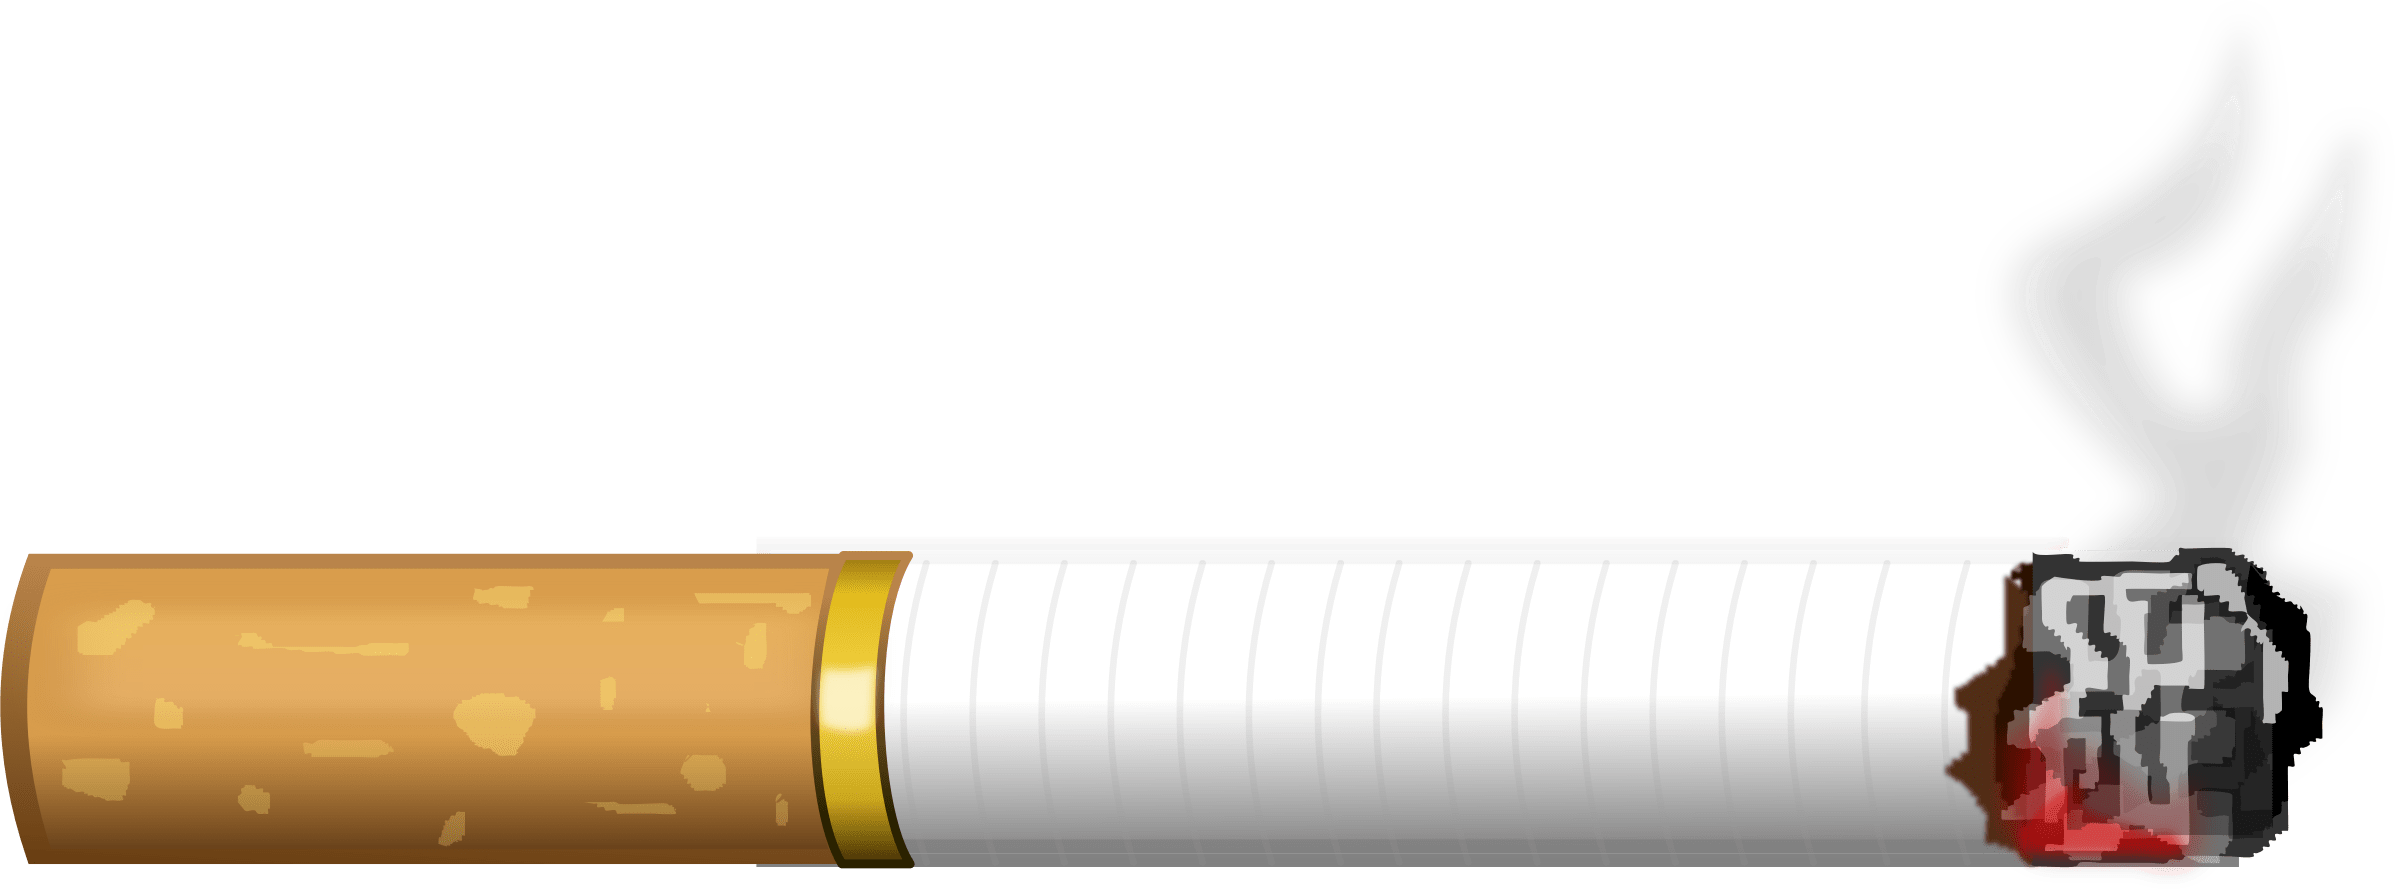 Cigar clipart cigar smoke. Cigarette pencil and in